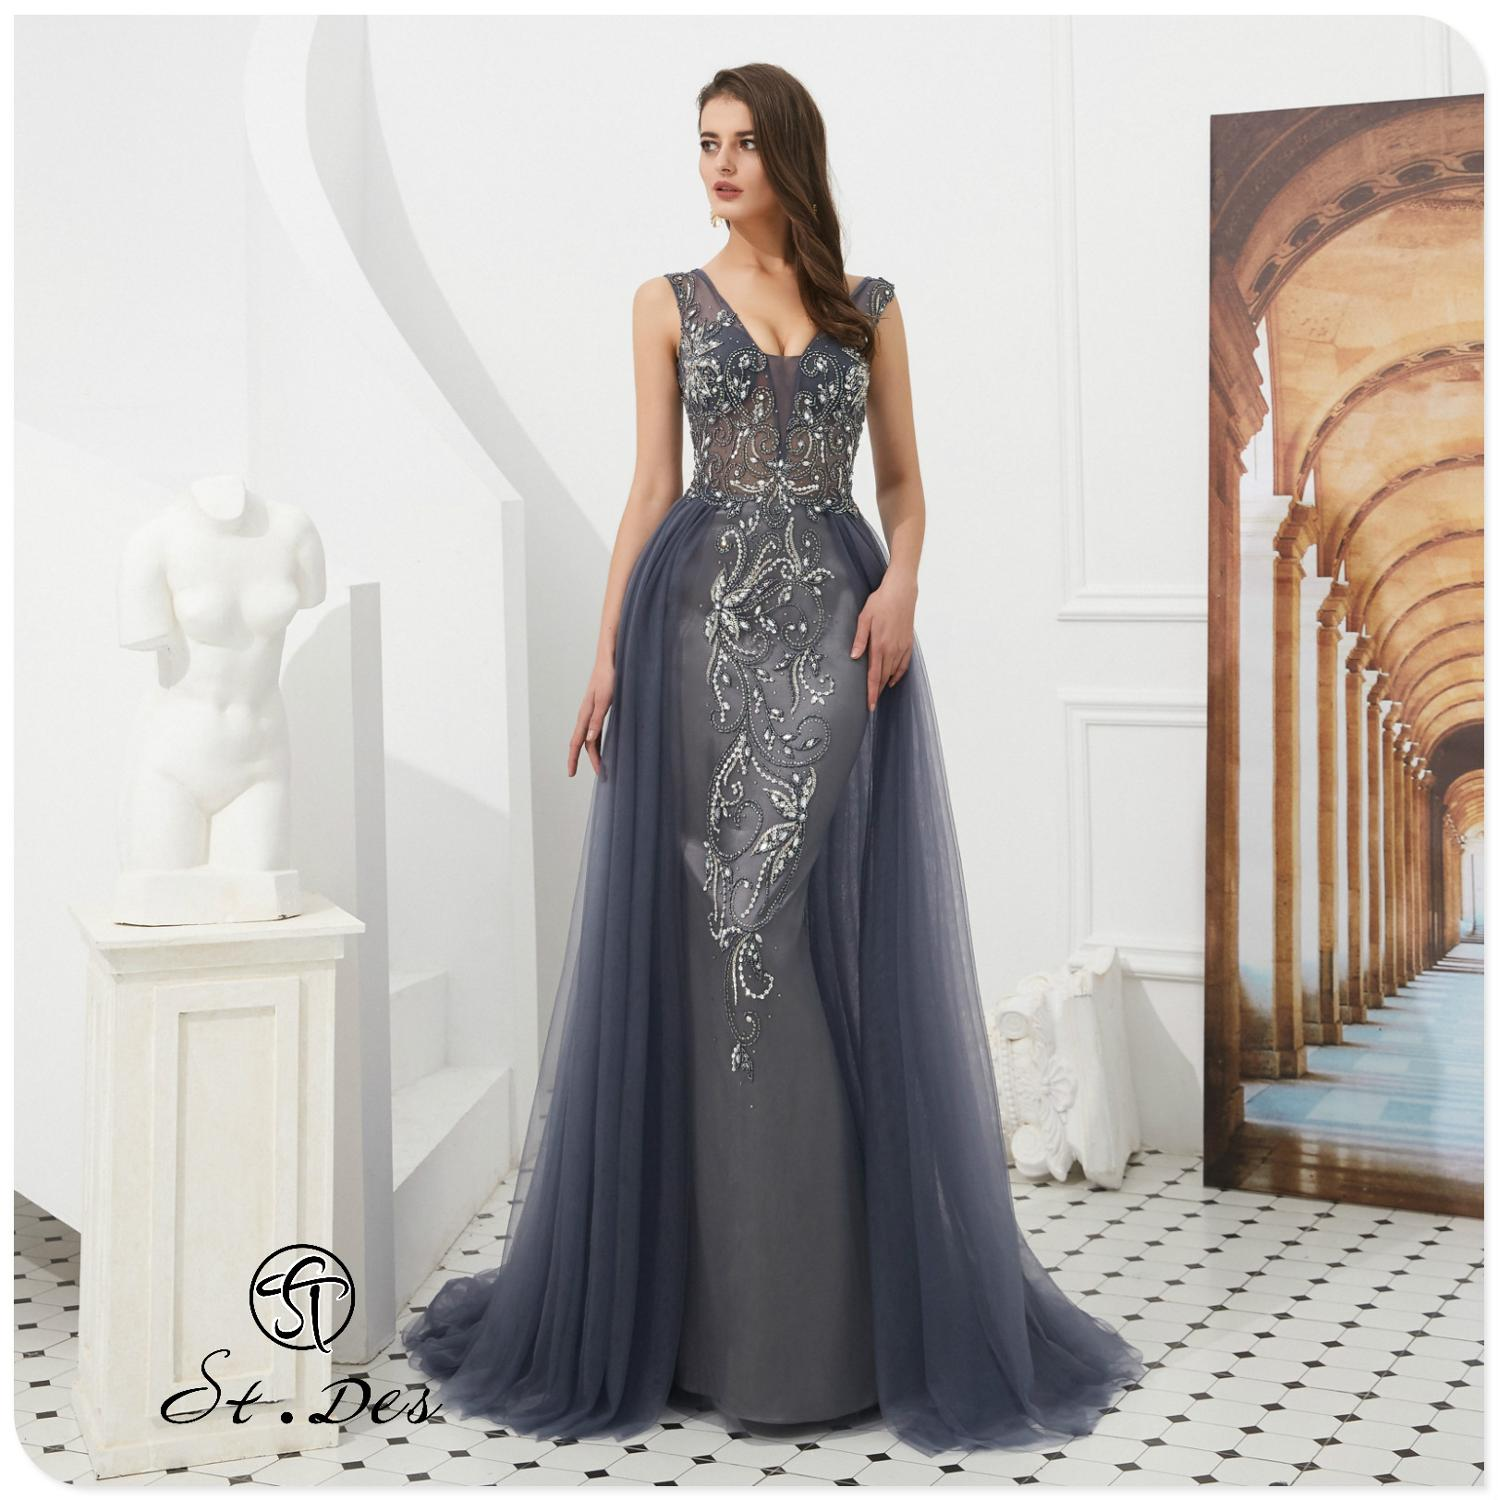 NEW 2020 St.Des A-line Russian V-Neck Gray Wine Diamond Sequins Mid-sleeve Designer Floor Length Evening Dress Party Dress